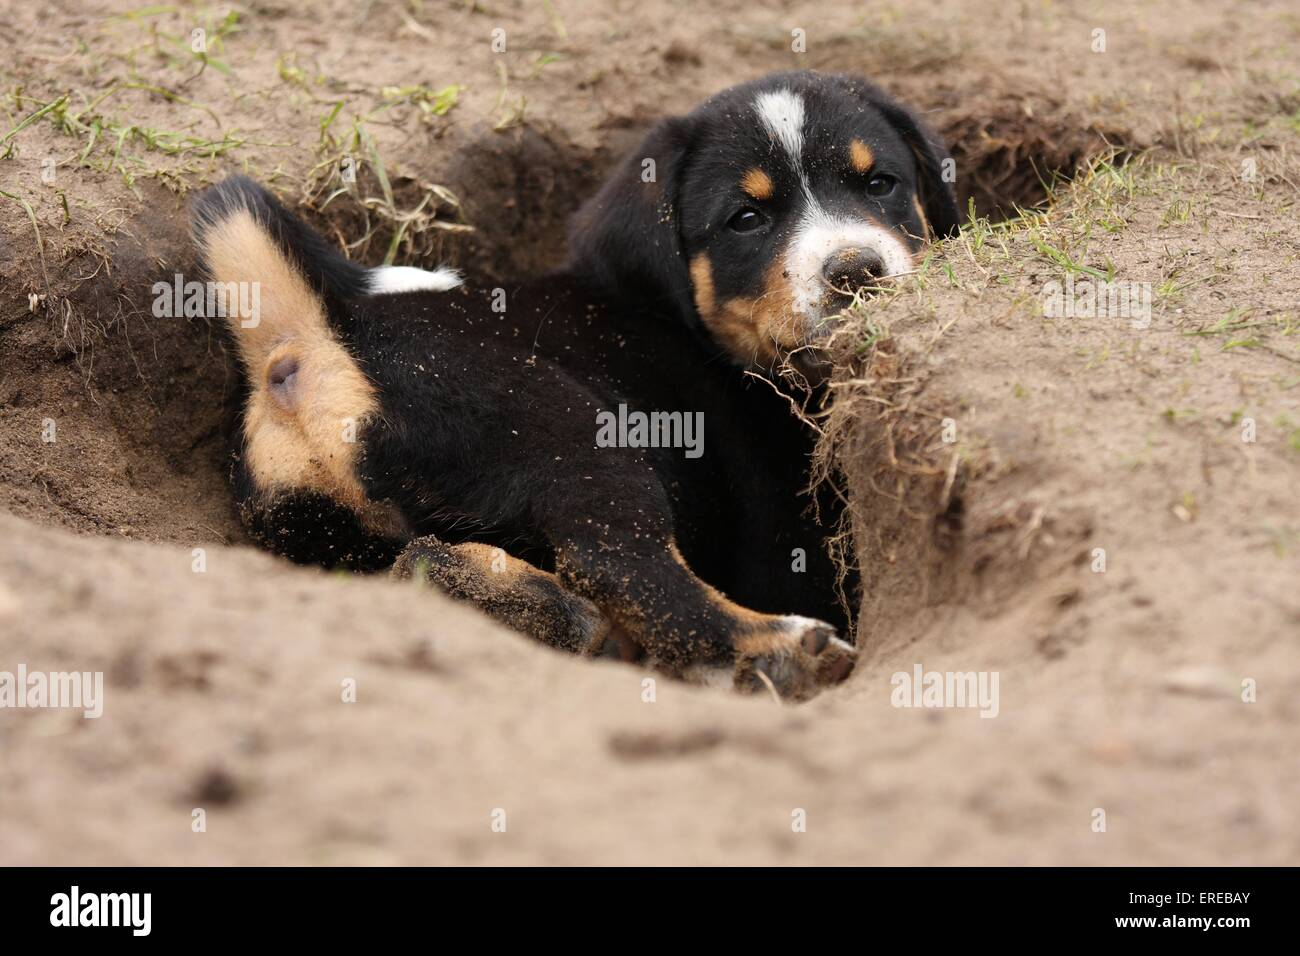 Appenzeller Mountain Dog Puppy Stock Photo 83294819 Alamy